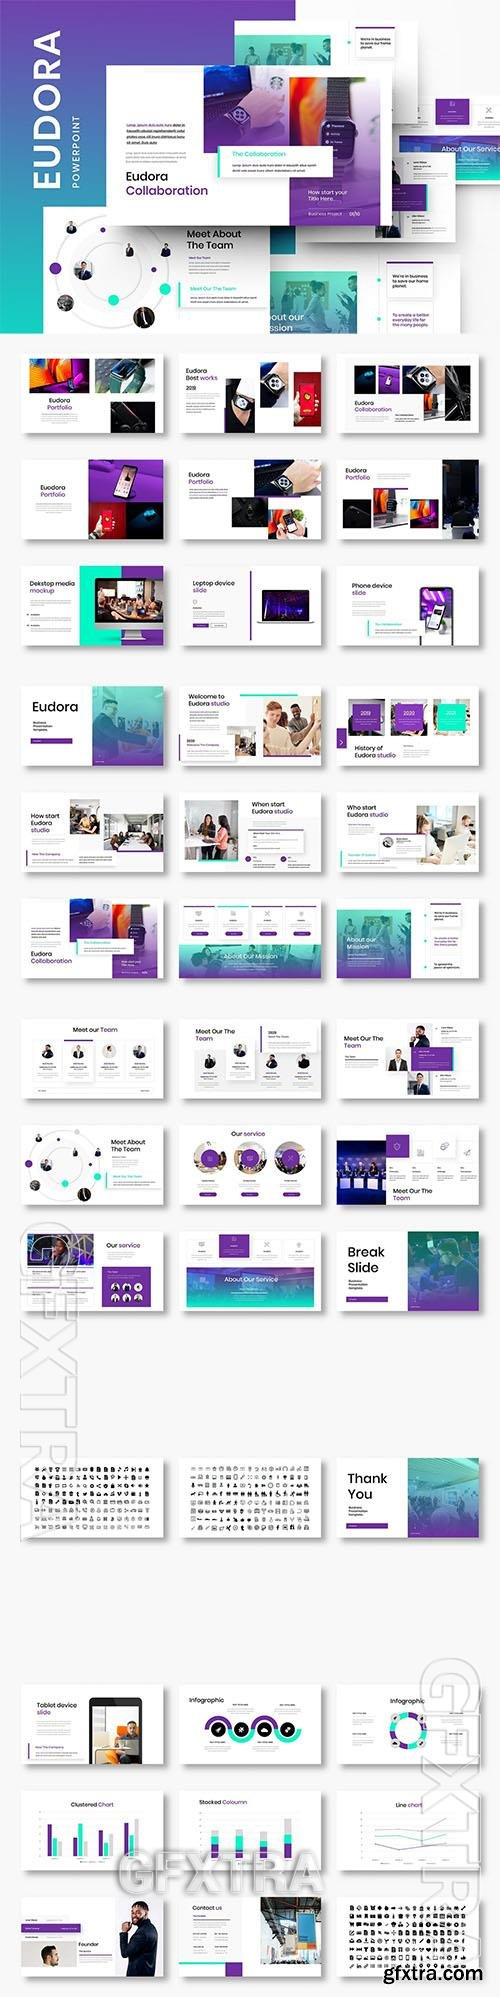 Eudora - Business Powerpoint, Keynote and Google Slides Template